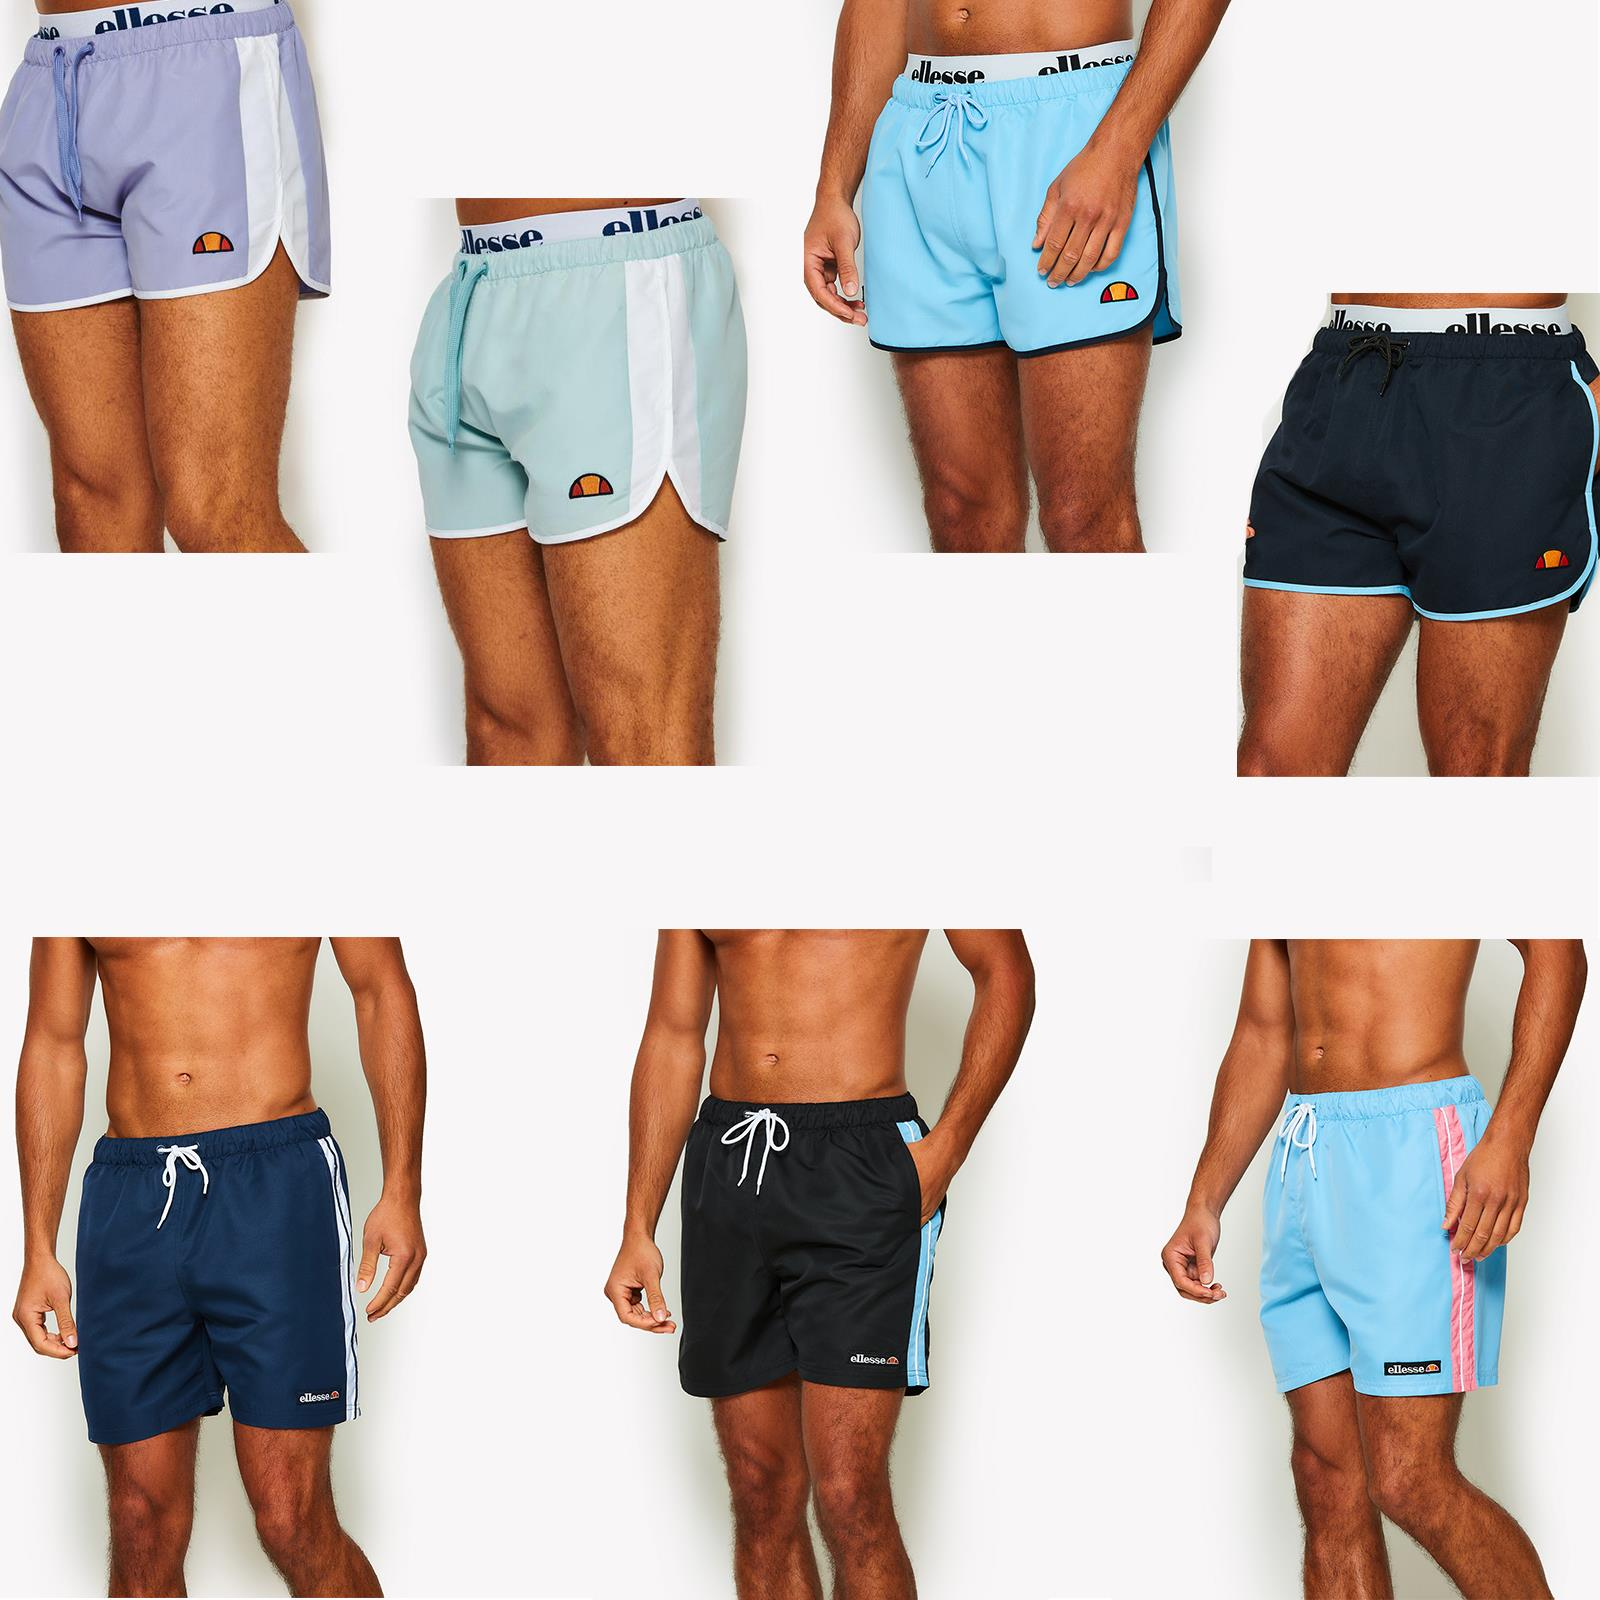 61fab5df53 Details about Ellesse Nasello Beach, Pool Swim Short in Pastel Blue, Pink,  Purple & Black